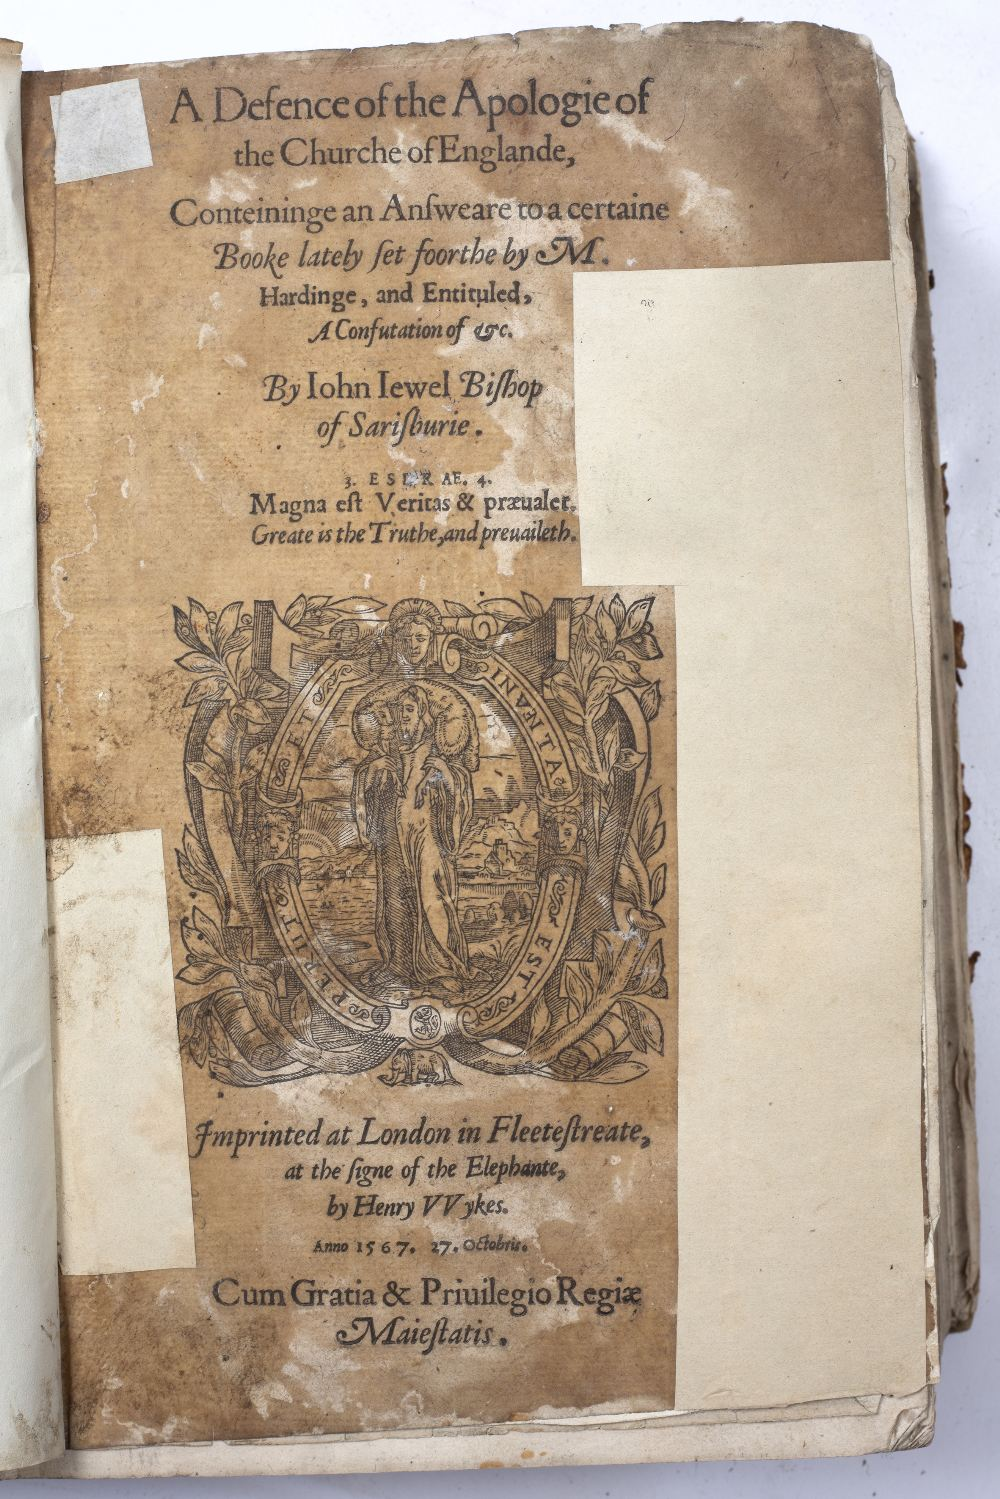 JEWEL, John (1522-1571), Bishop of Salisbury 'A Defence of the Apologie of the Church of Englande,